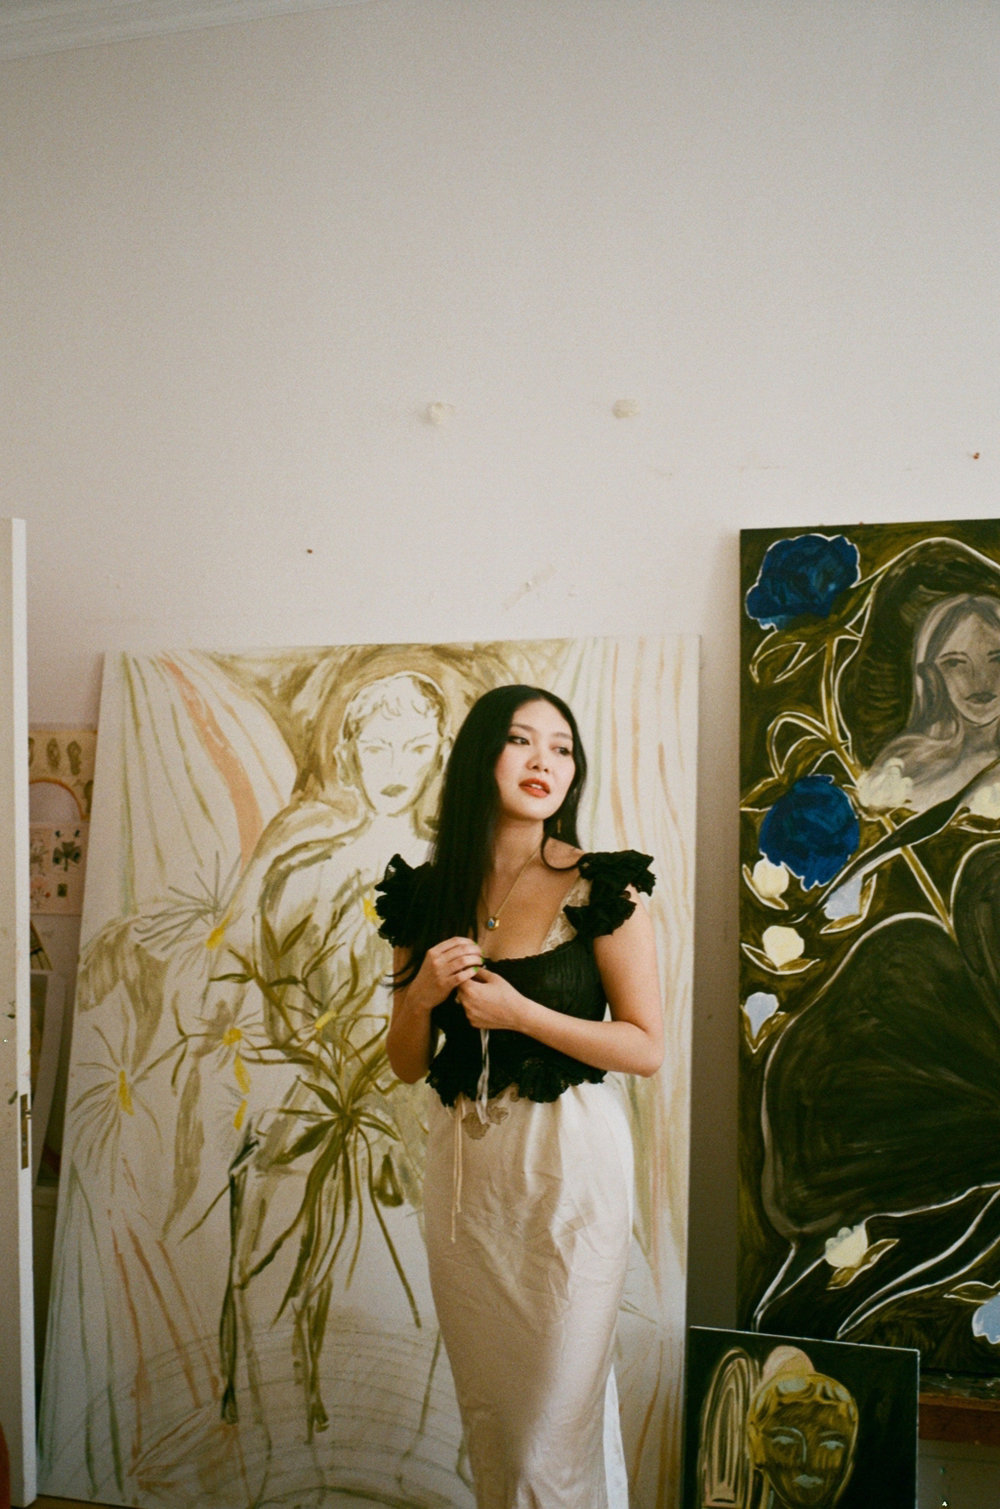 Faye Wei Wei for Oh Comely